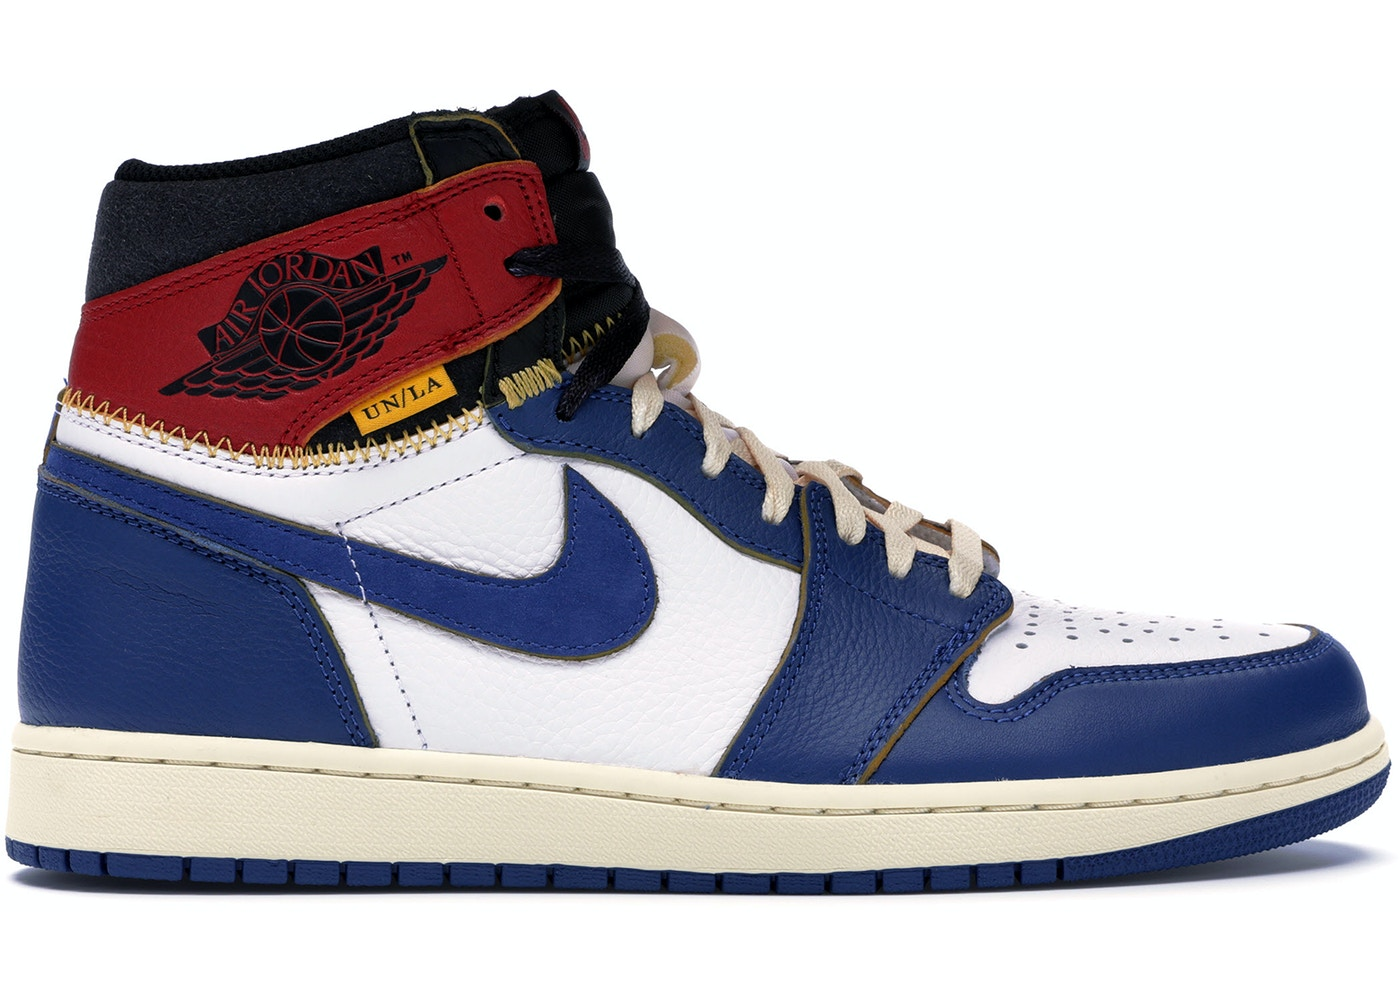 6a600b83bfbad Jordan 1 Retro High Union Los Angeles Blue Toe